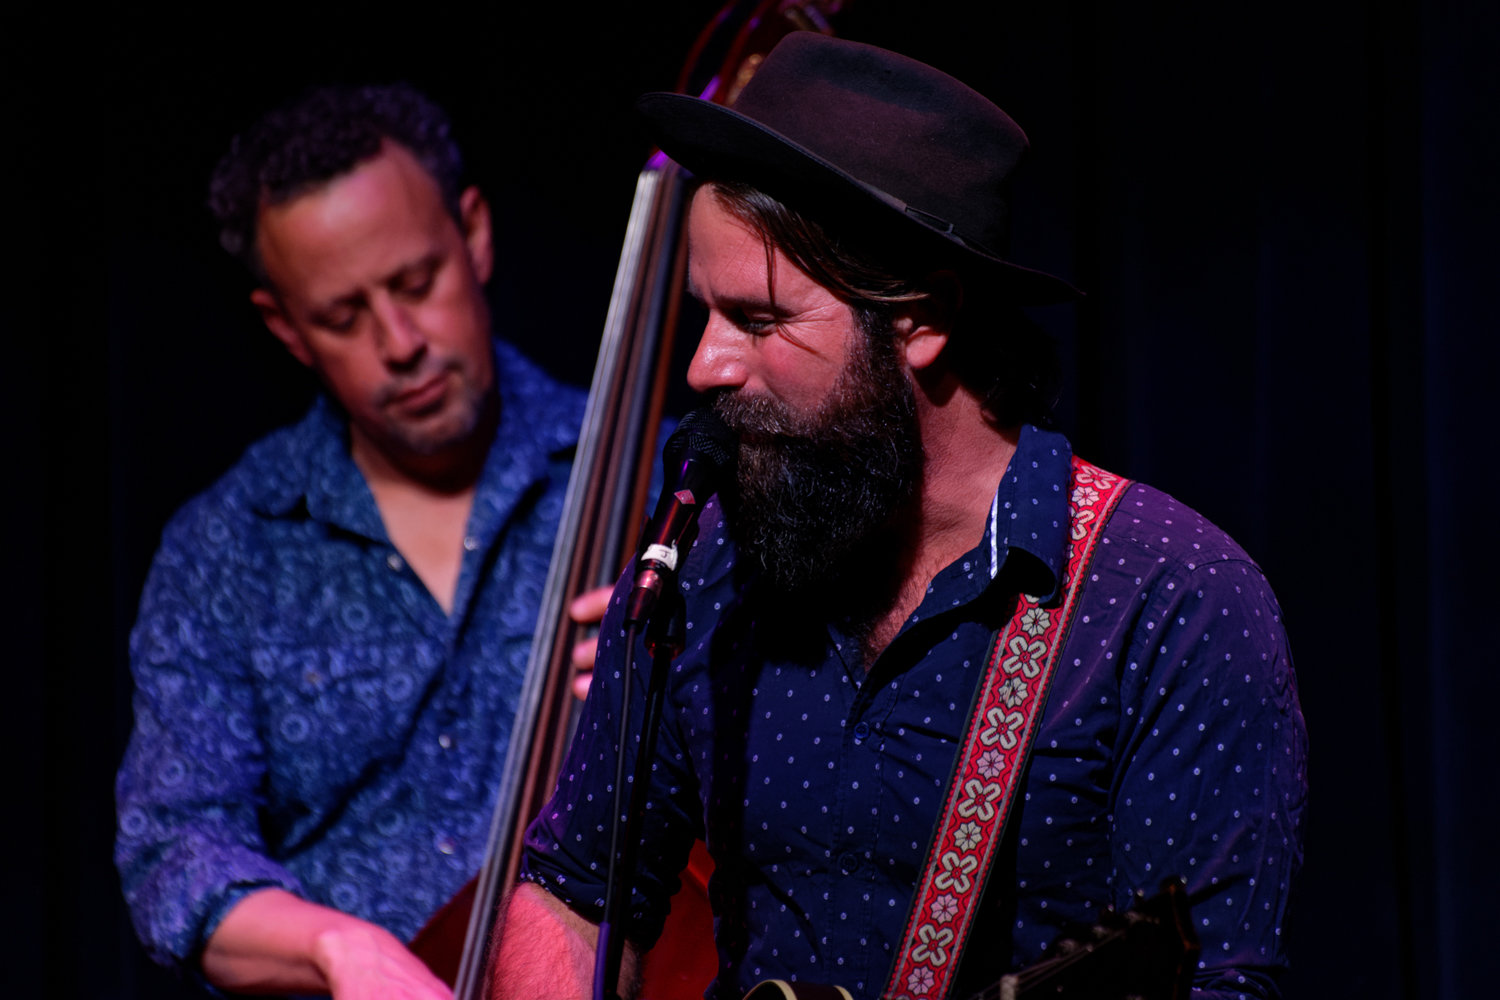 20190801 022 Freight & Salvage - The Waifs by Jon Bauer.jpg